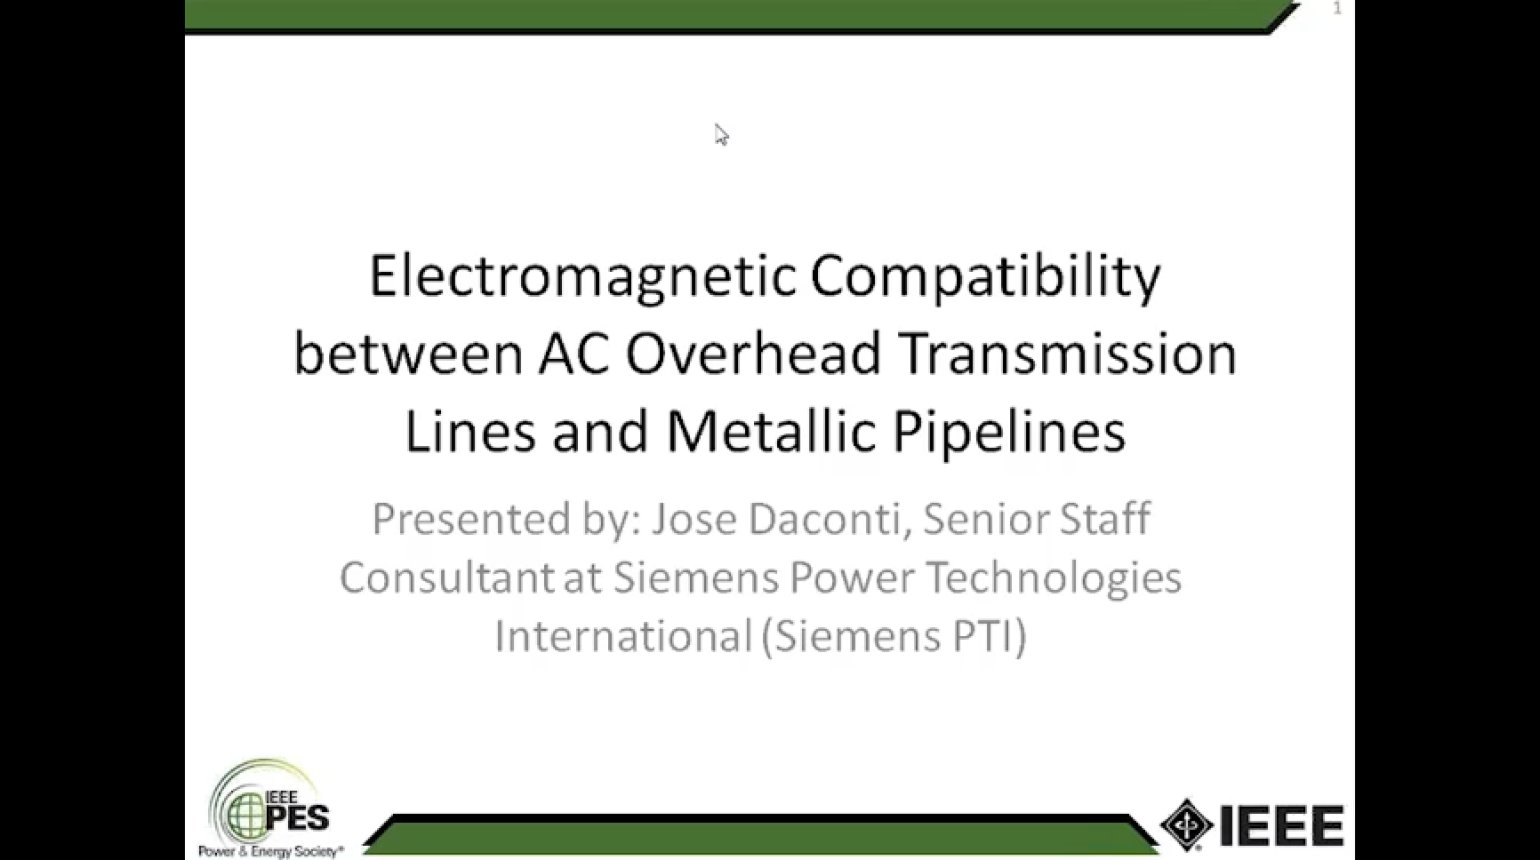 Electromagnetic Compatibility between AC Overhead Transmission Lines and Metallic Pipelines